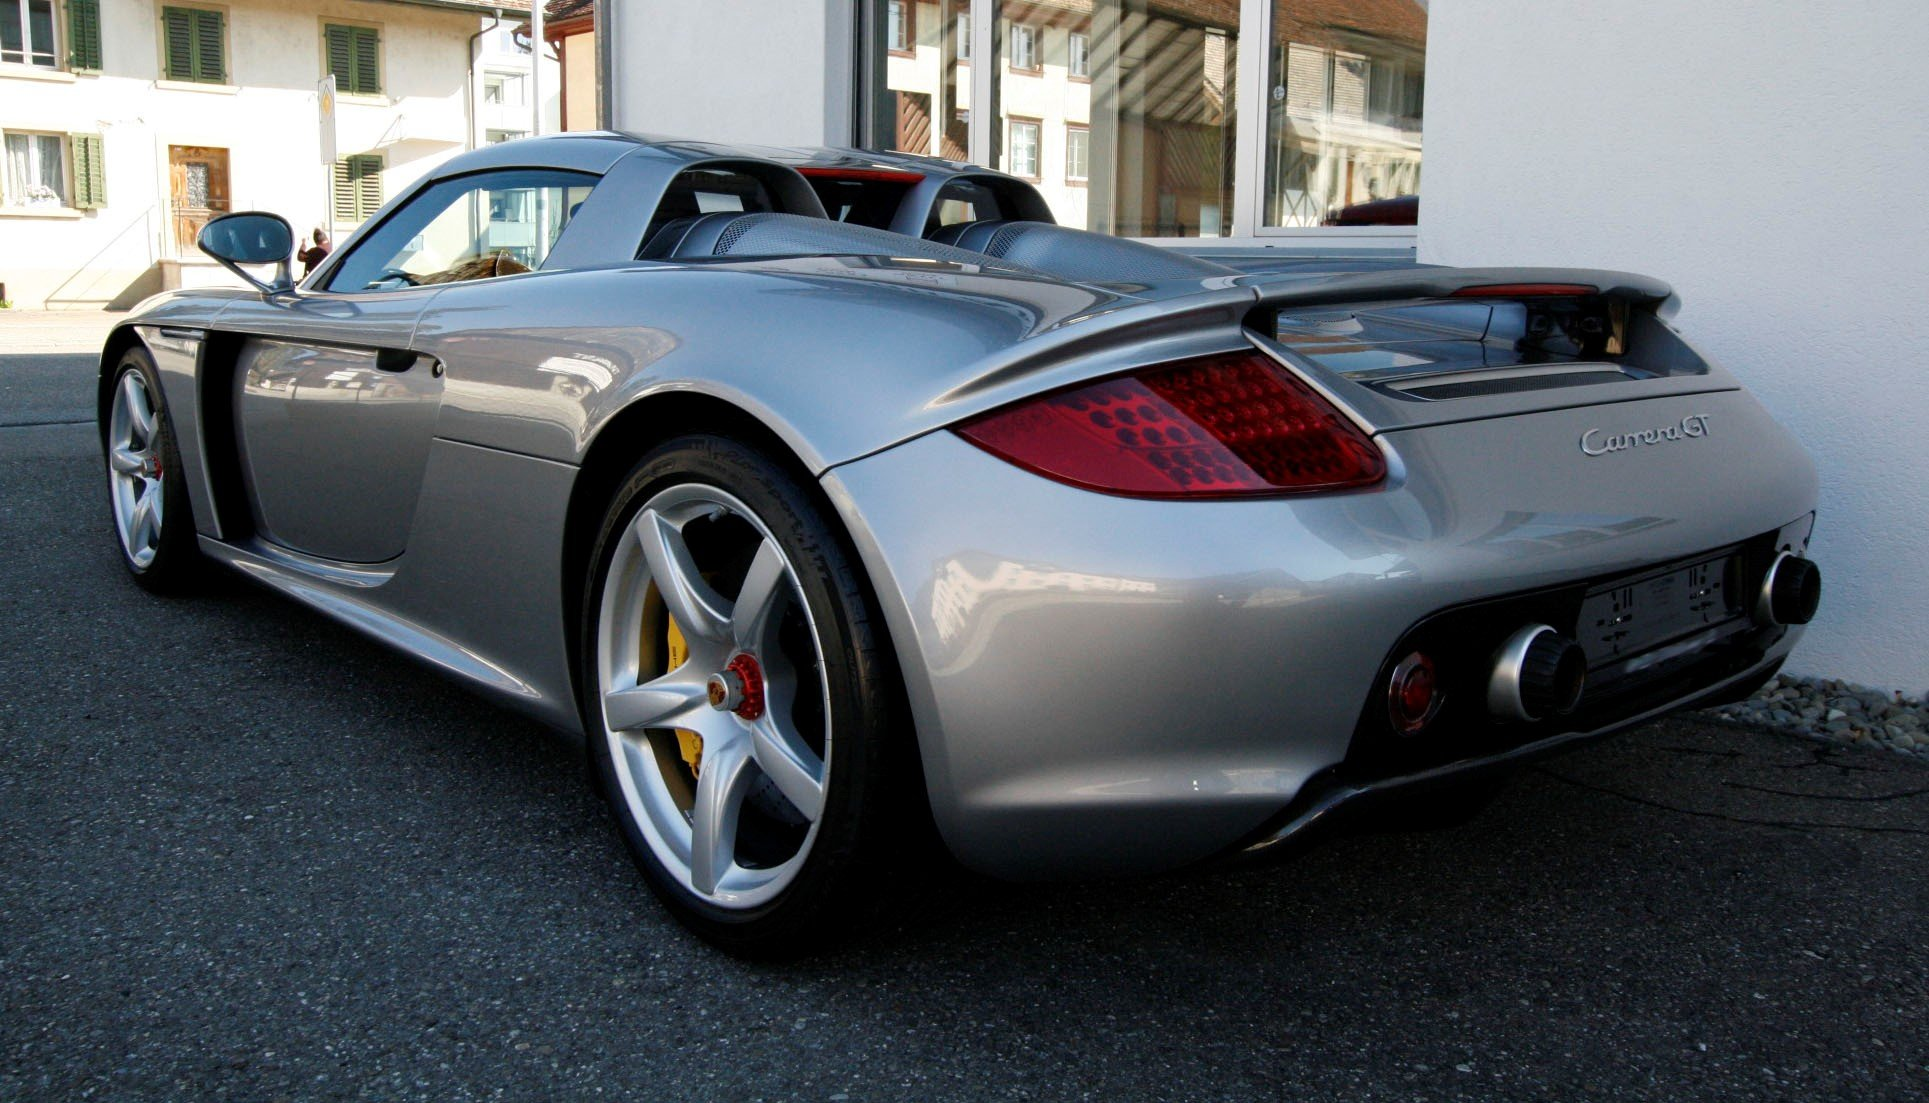 2004 Porsche Carrera GT F1 inspired mid engine supercar For Sale (picture 2 of 6)